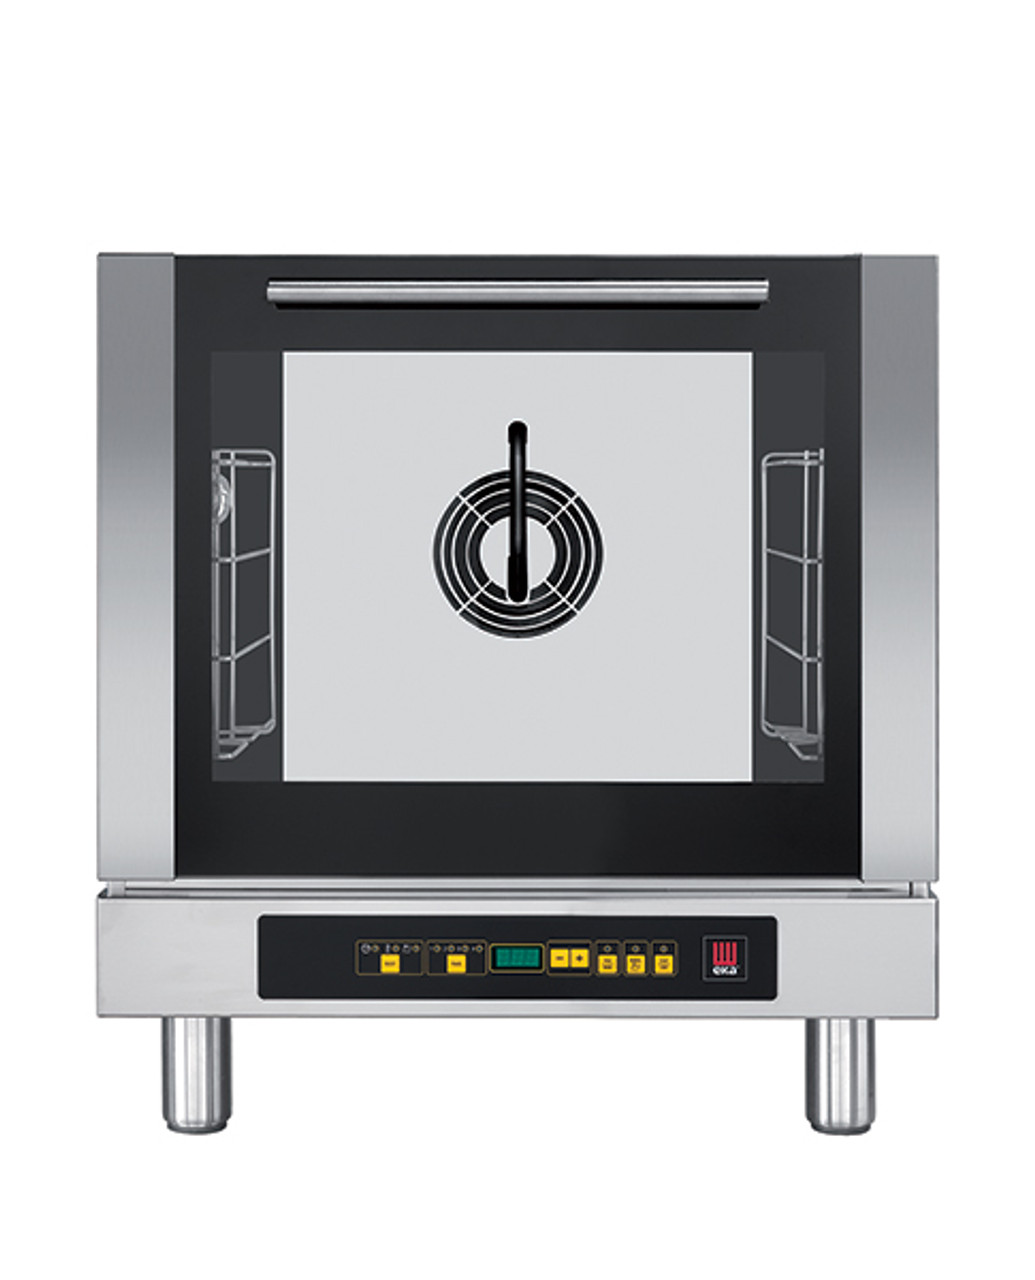 """Eka 4-tray, half-size (13x18) convection oven with steam injection and digital controls.  Stainless steel construction.  Auto-reversing, bi-directional fan.  Four 13"""" x 18"""" grids included."""